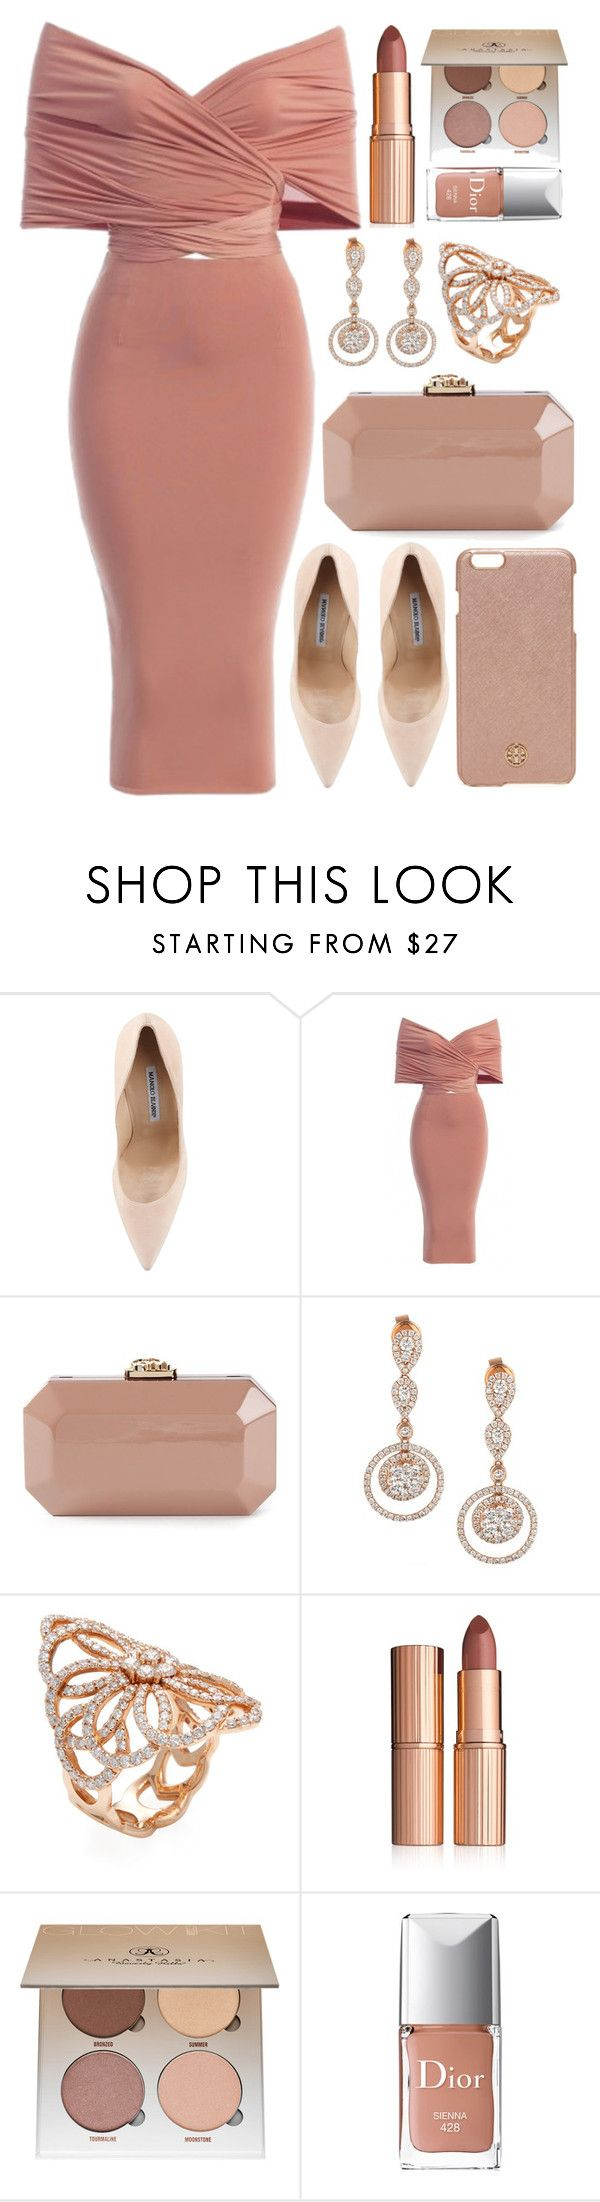 """""""Untitled #4306"""" by natalyasidunova ❤ liked on Polyvore featuring Manolo Blahnik, Serpui, LE VIAN, Nephora, Charlotte Tilbury, Anastasia Beverly Hills, Christian Dior and Tory Burch"""